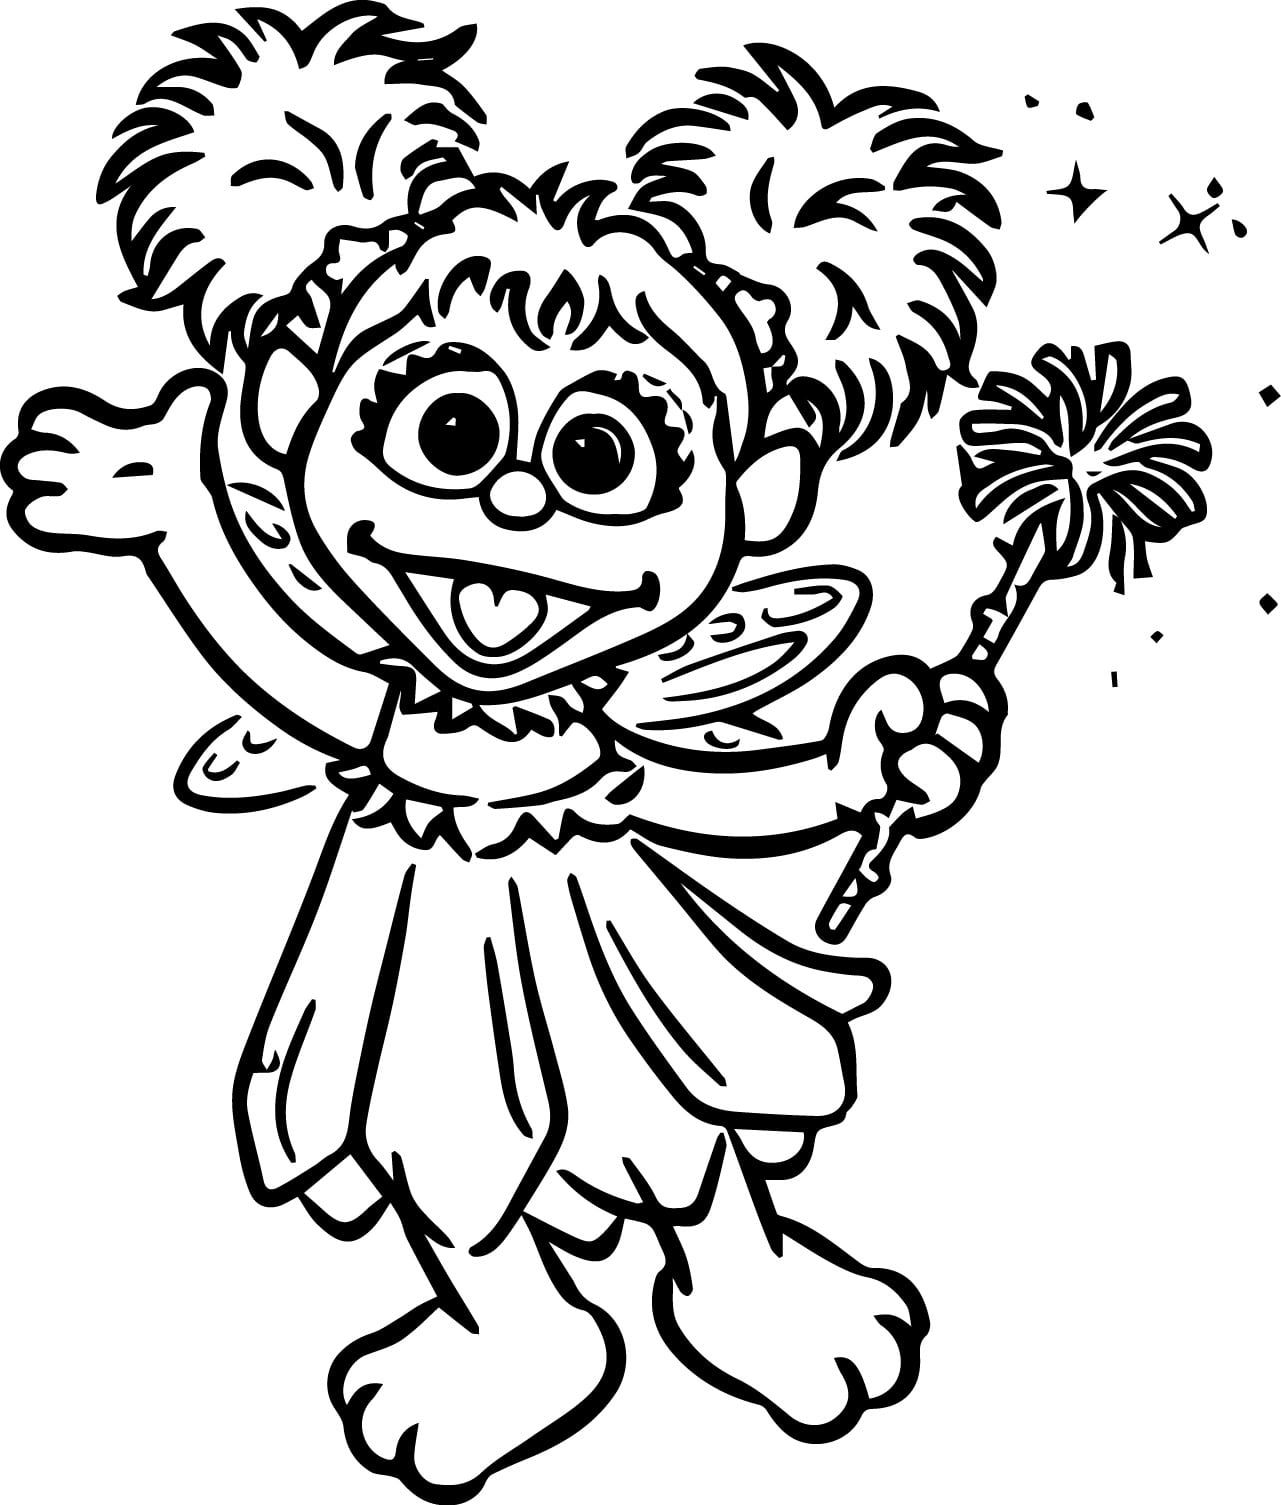 Abby Cadabby Coloring Sheets Sesame Street Coloring Pages Halloween Coloring Pages Halloween Coloring